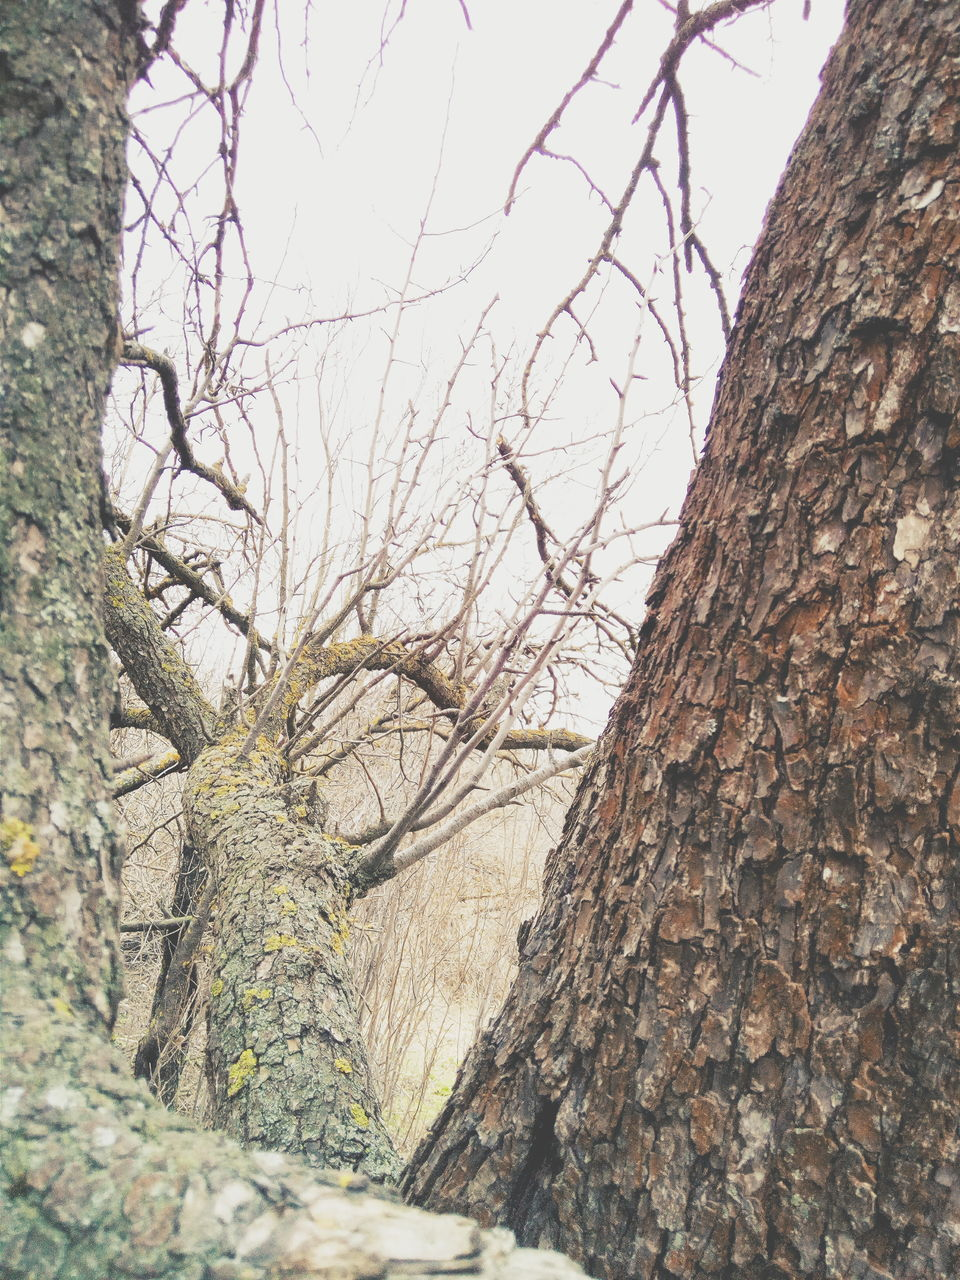 tree trunk, tree, day, nature, outdoors, textured, no people, growth, bark, branch, tranquility, close-up, bare tree, beauty in nature, sky